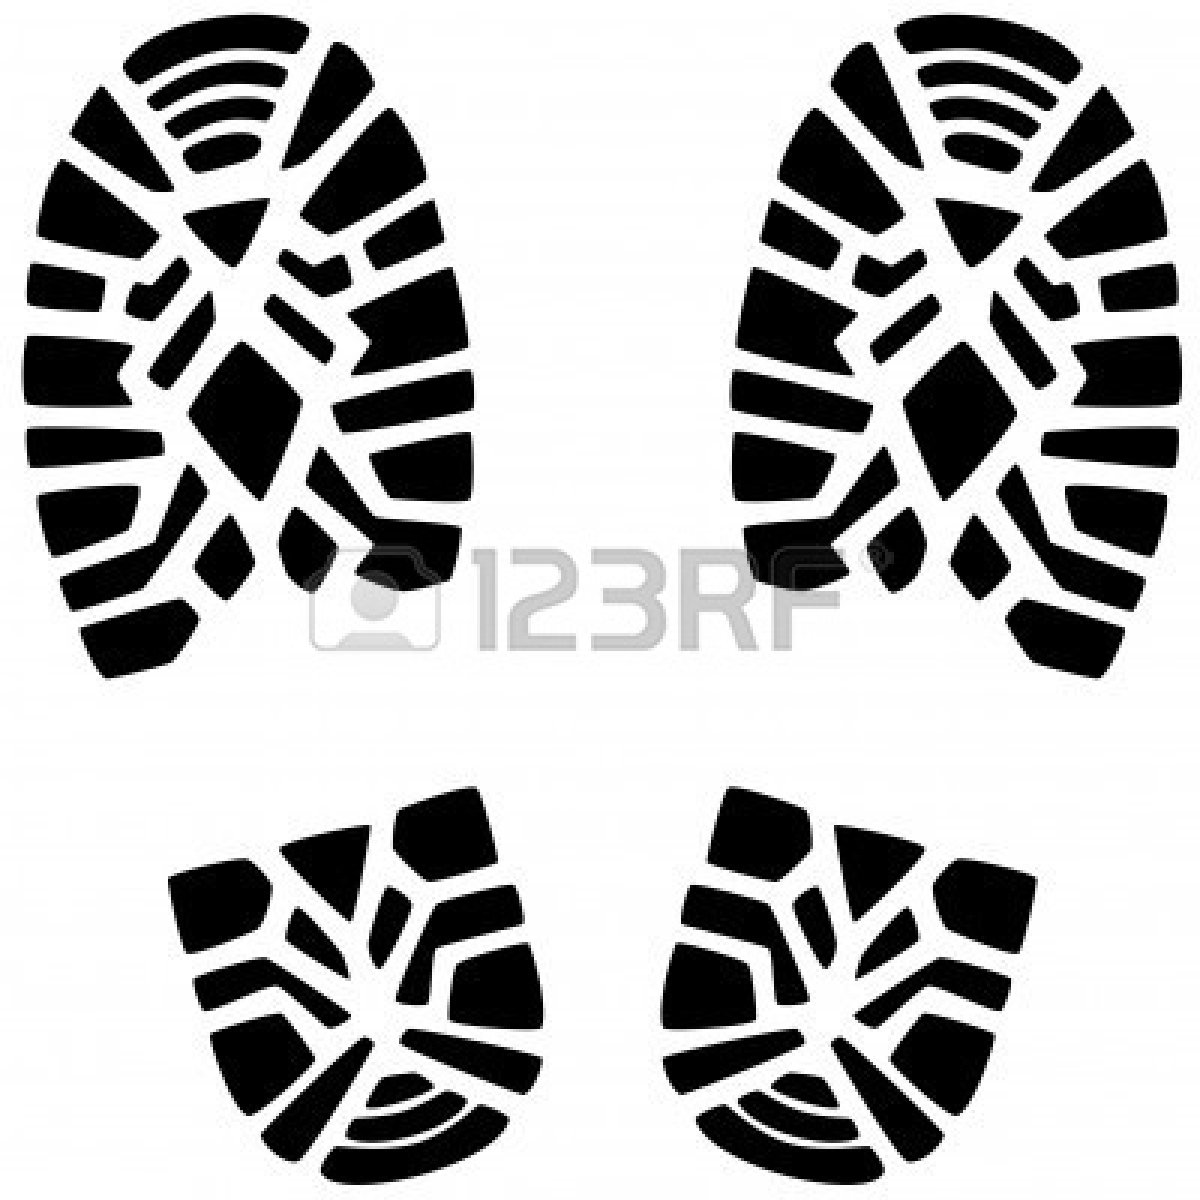 Footprint clipart boot Footprints Clipart Clip of a